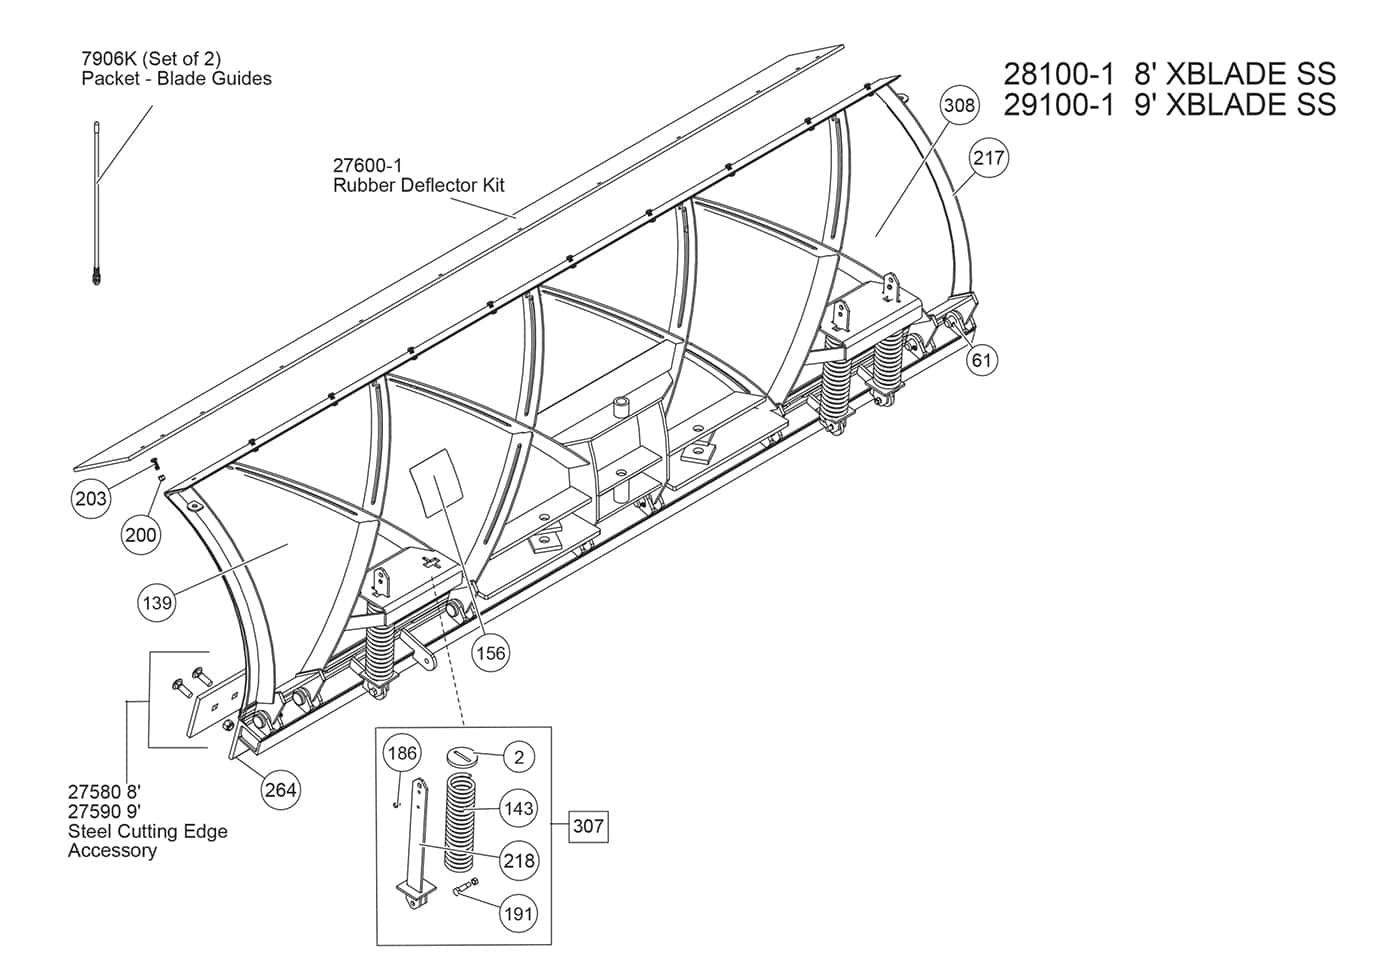 Sno Way Lobo Wiring Diagram For A 1991 Chevy Truck Wiring